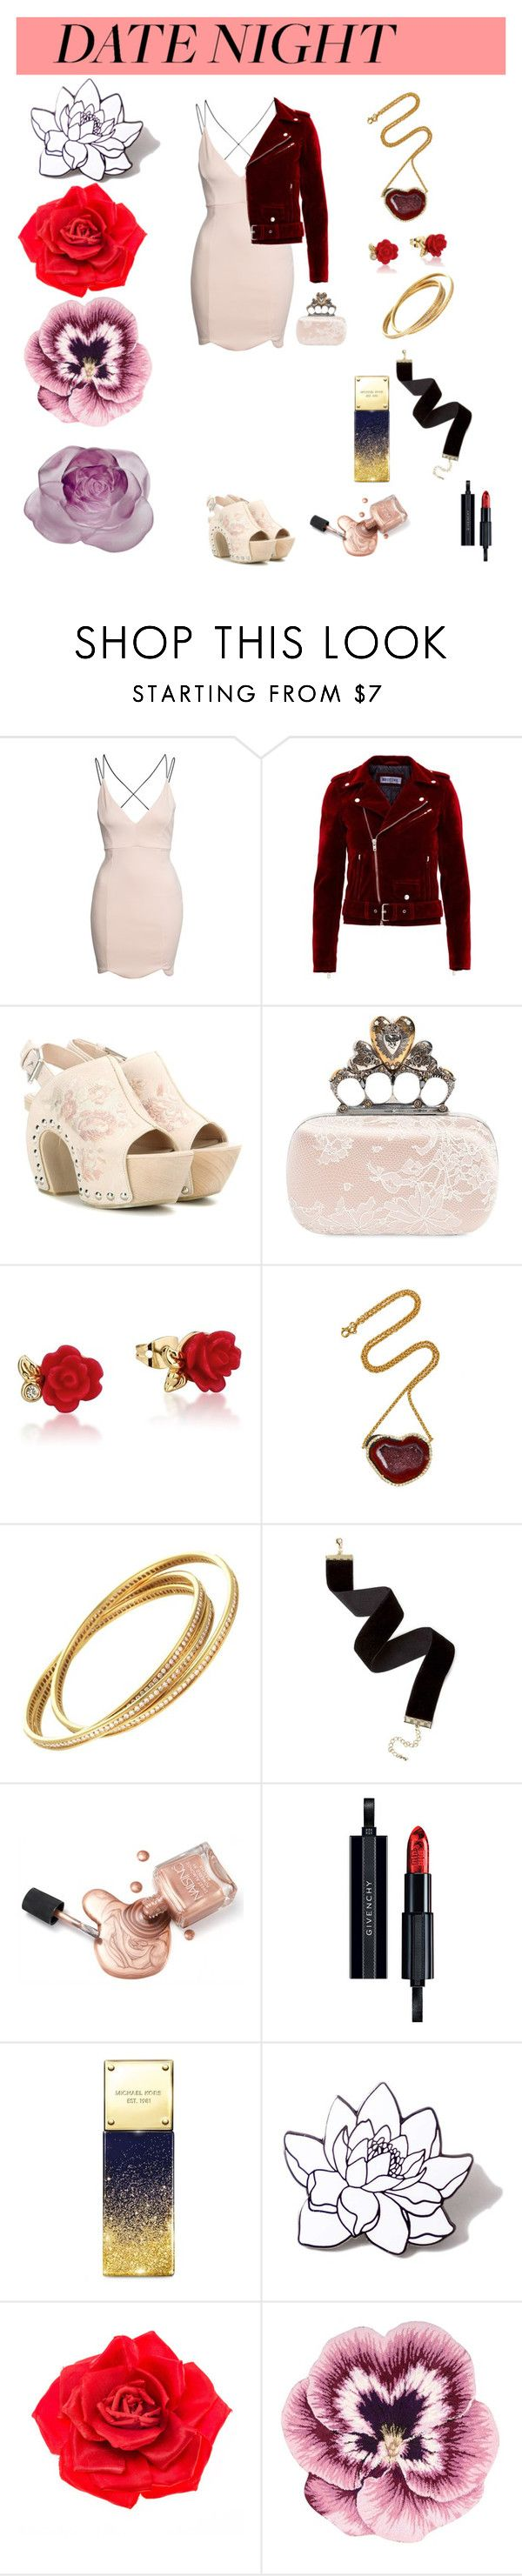 """Untitled #801"" by spectrearcane ❤ liked on Polyvore featuring Boohoo, Alexander McQueen, Disney, Kimberly McDonald, Givenchy, Michael Kors, PINTRILL, Johnny Loves Rosie, Nourison and Daum"